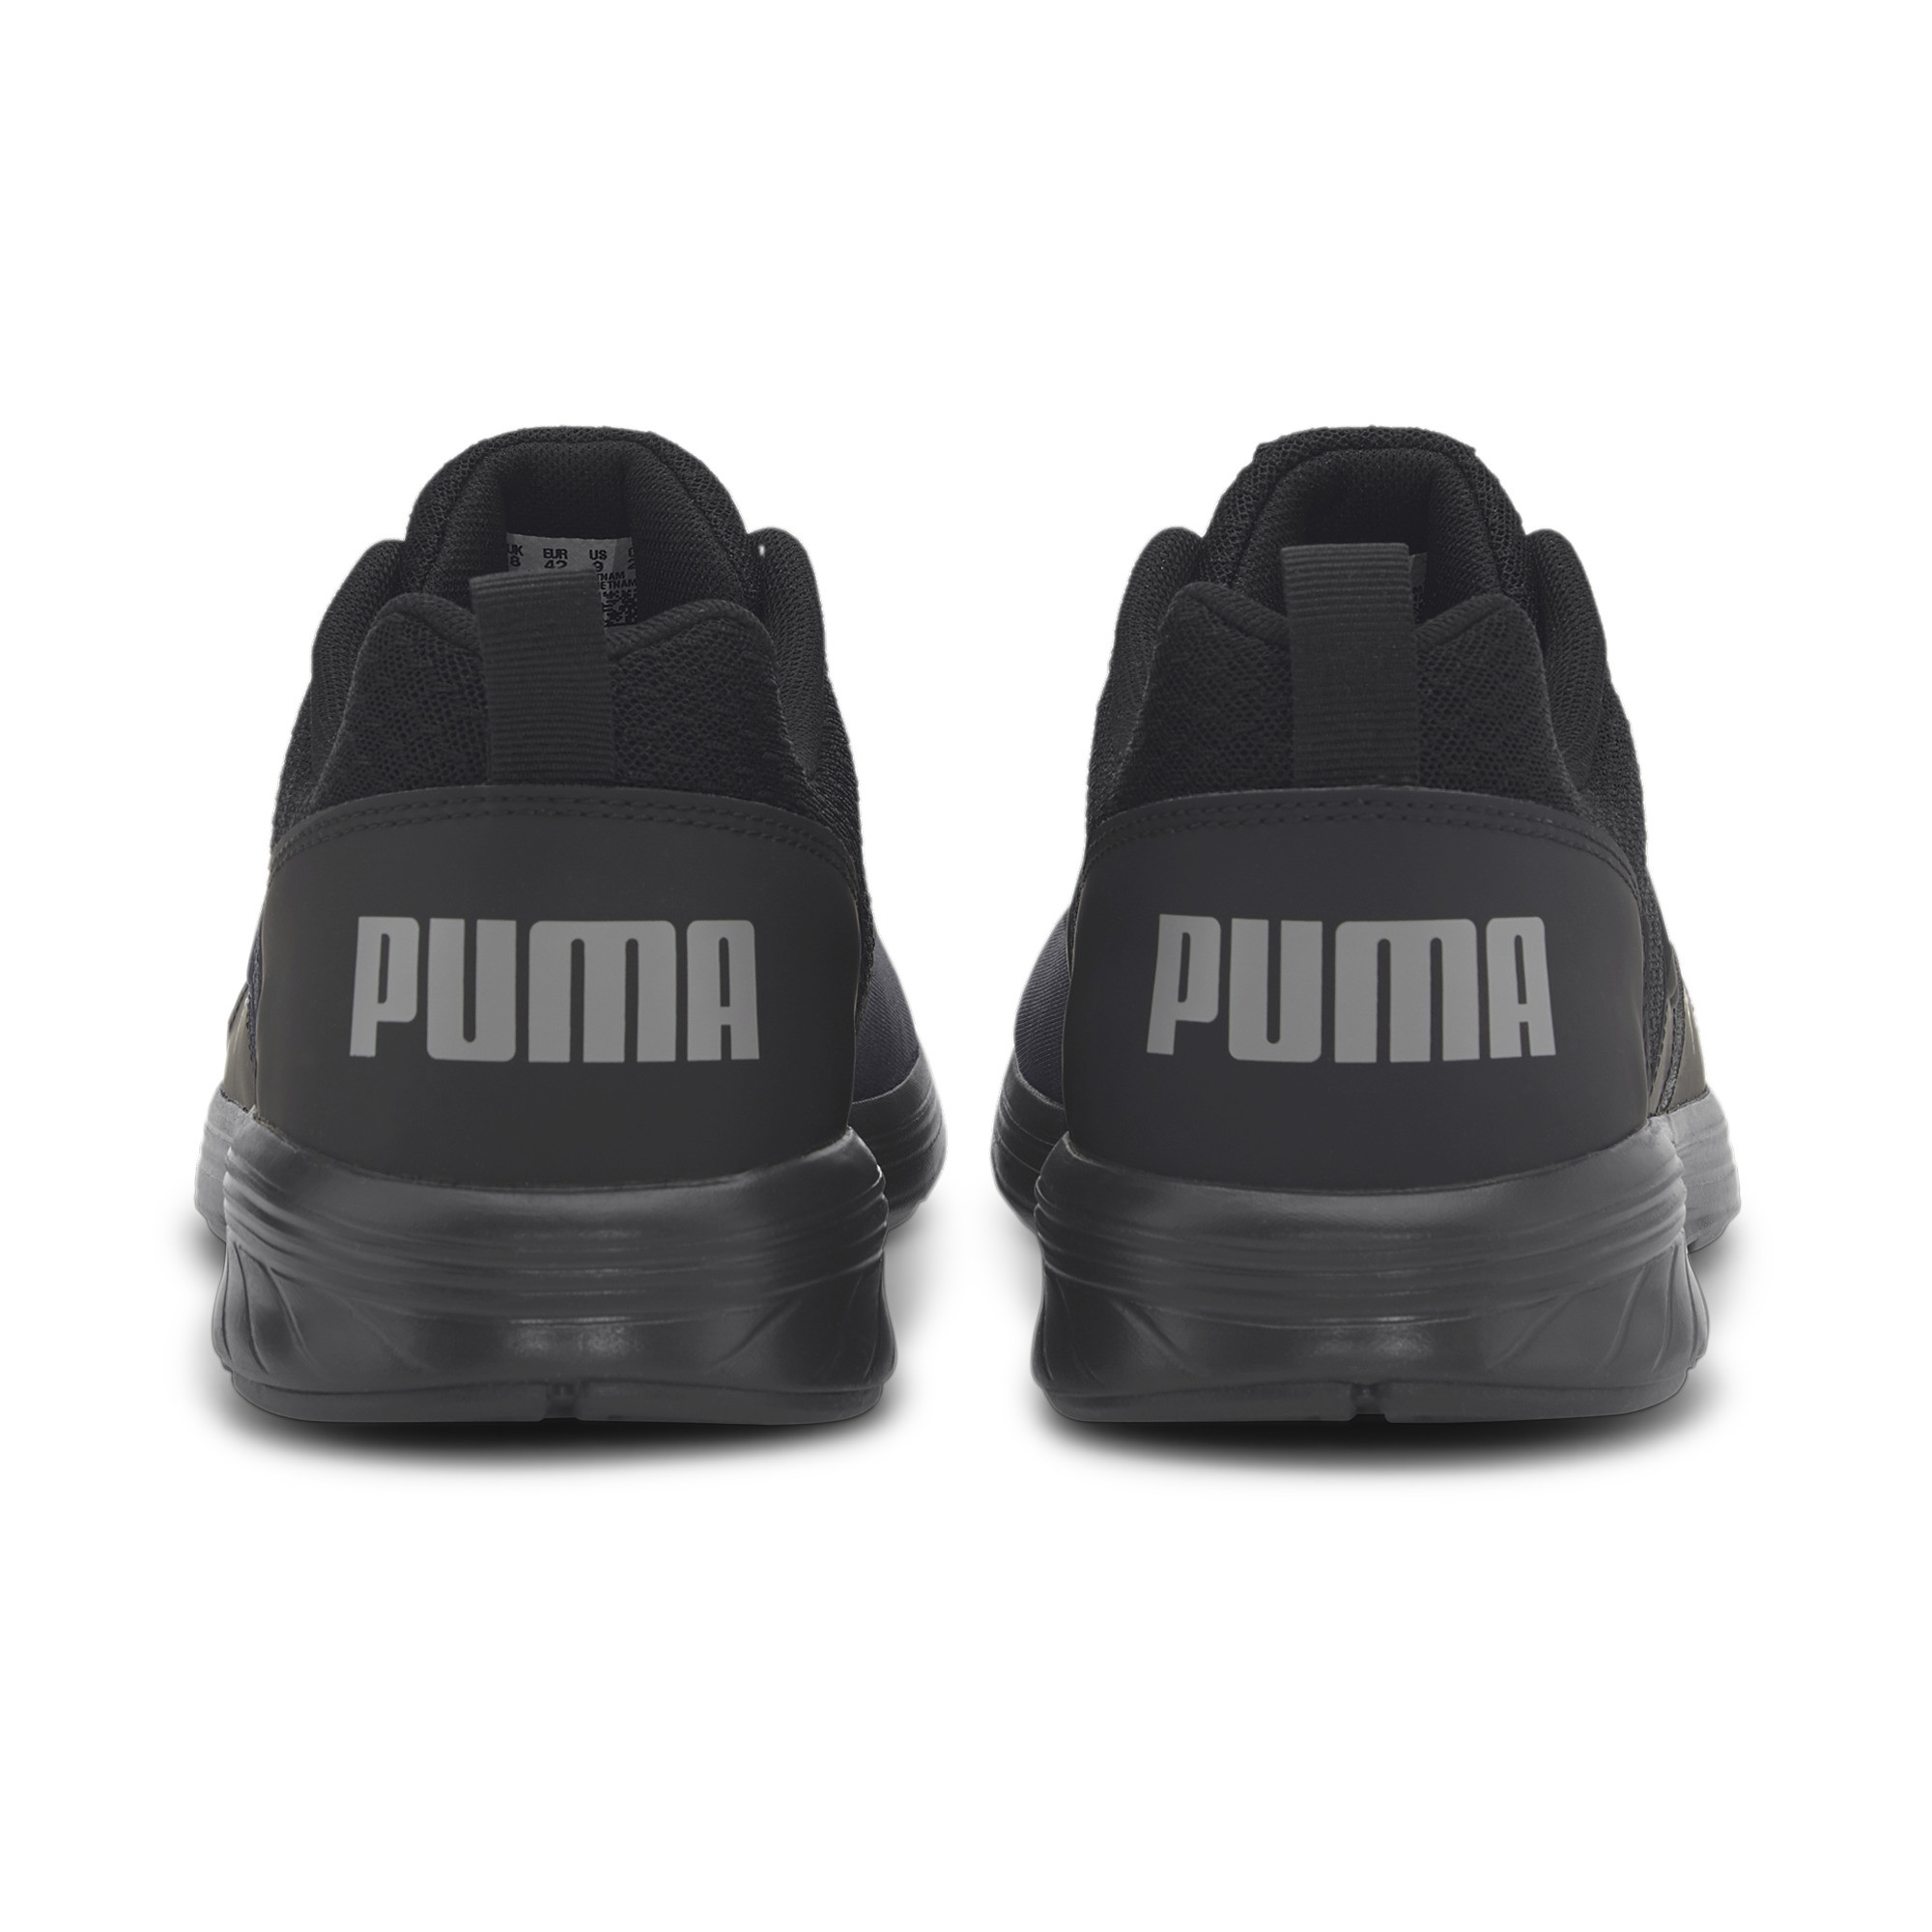 PUMA-Men-039-s-NRGY-Comet-Running-Shoes thumbnail 9